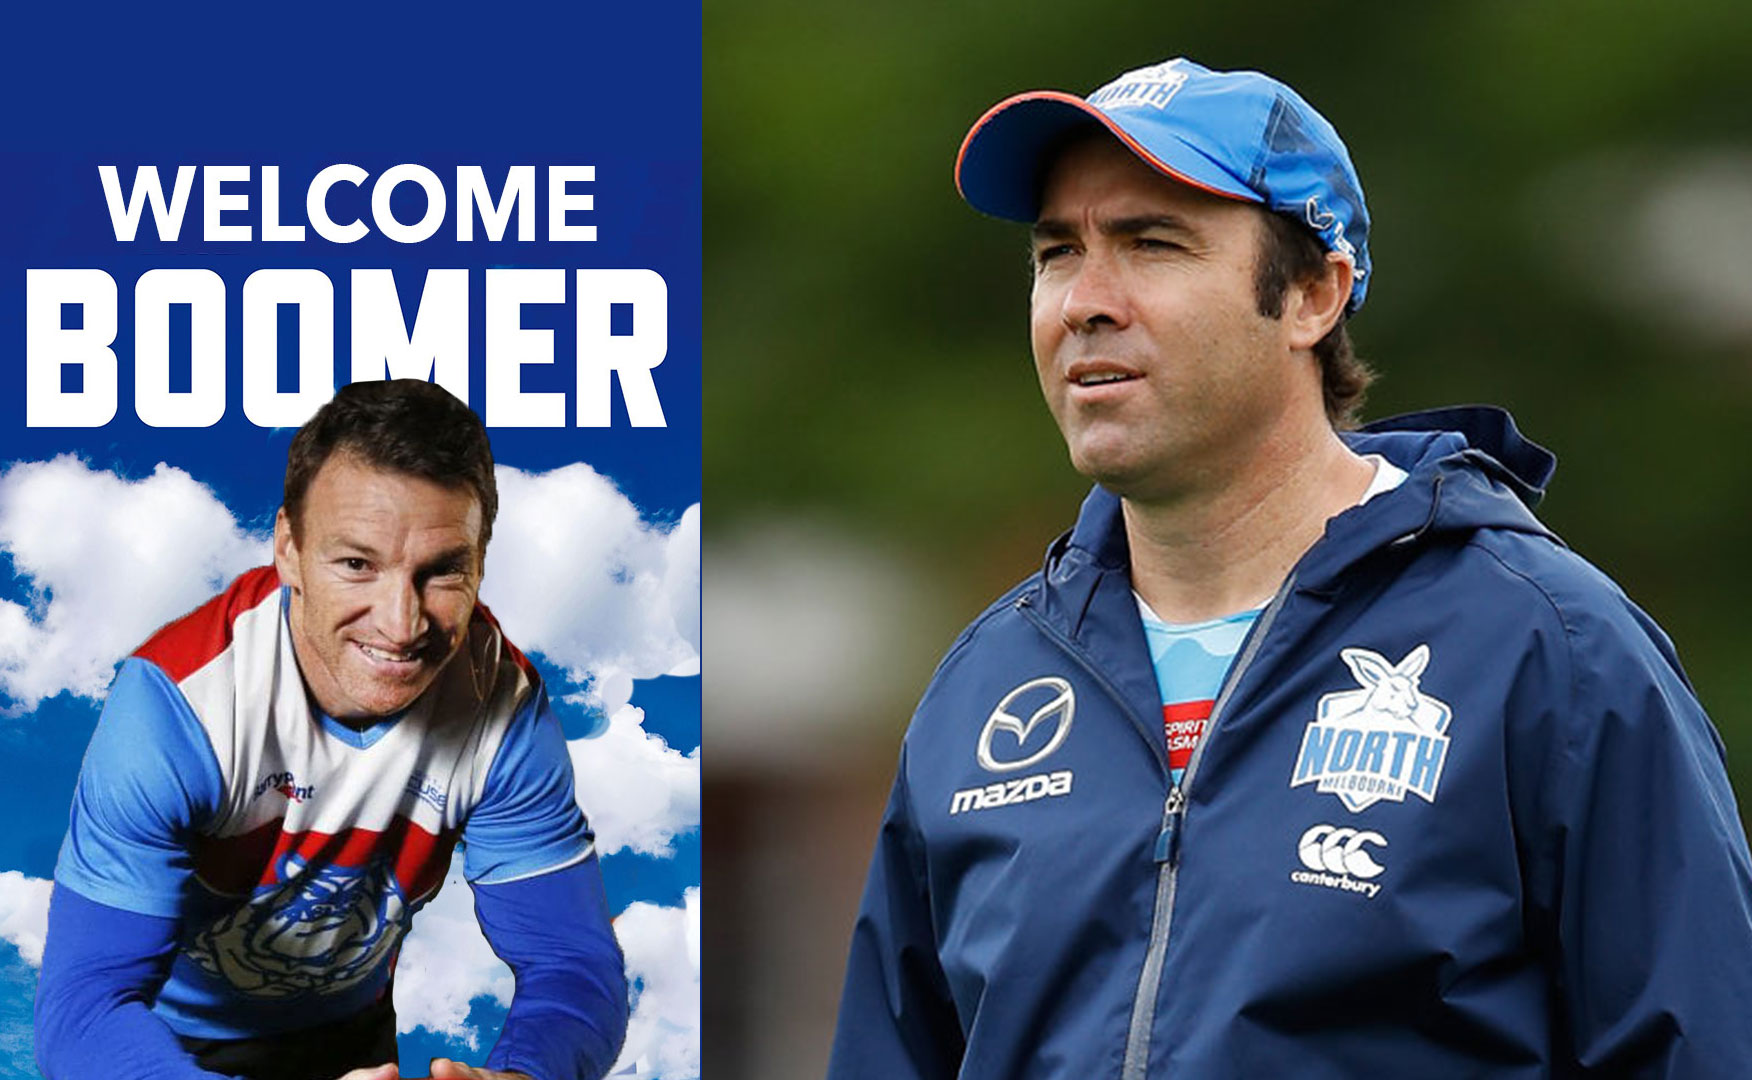 North Melbourne Finally Land Signature of a Big Fish